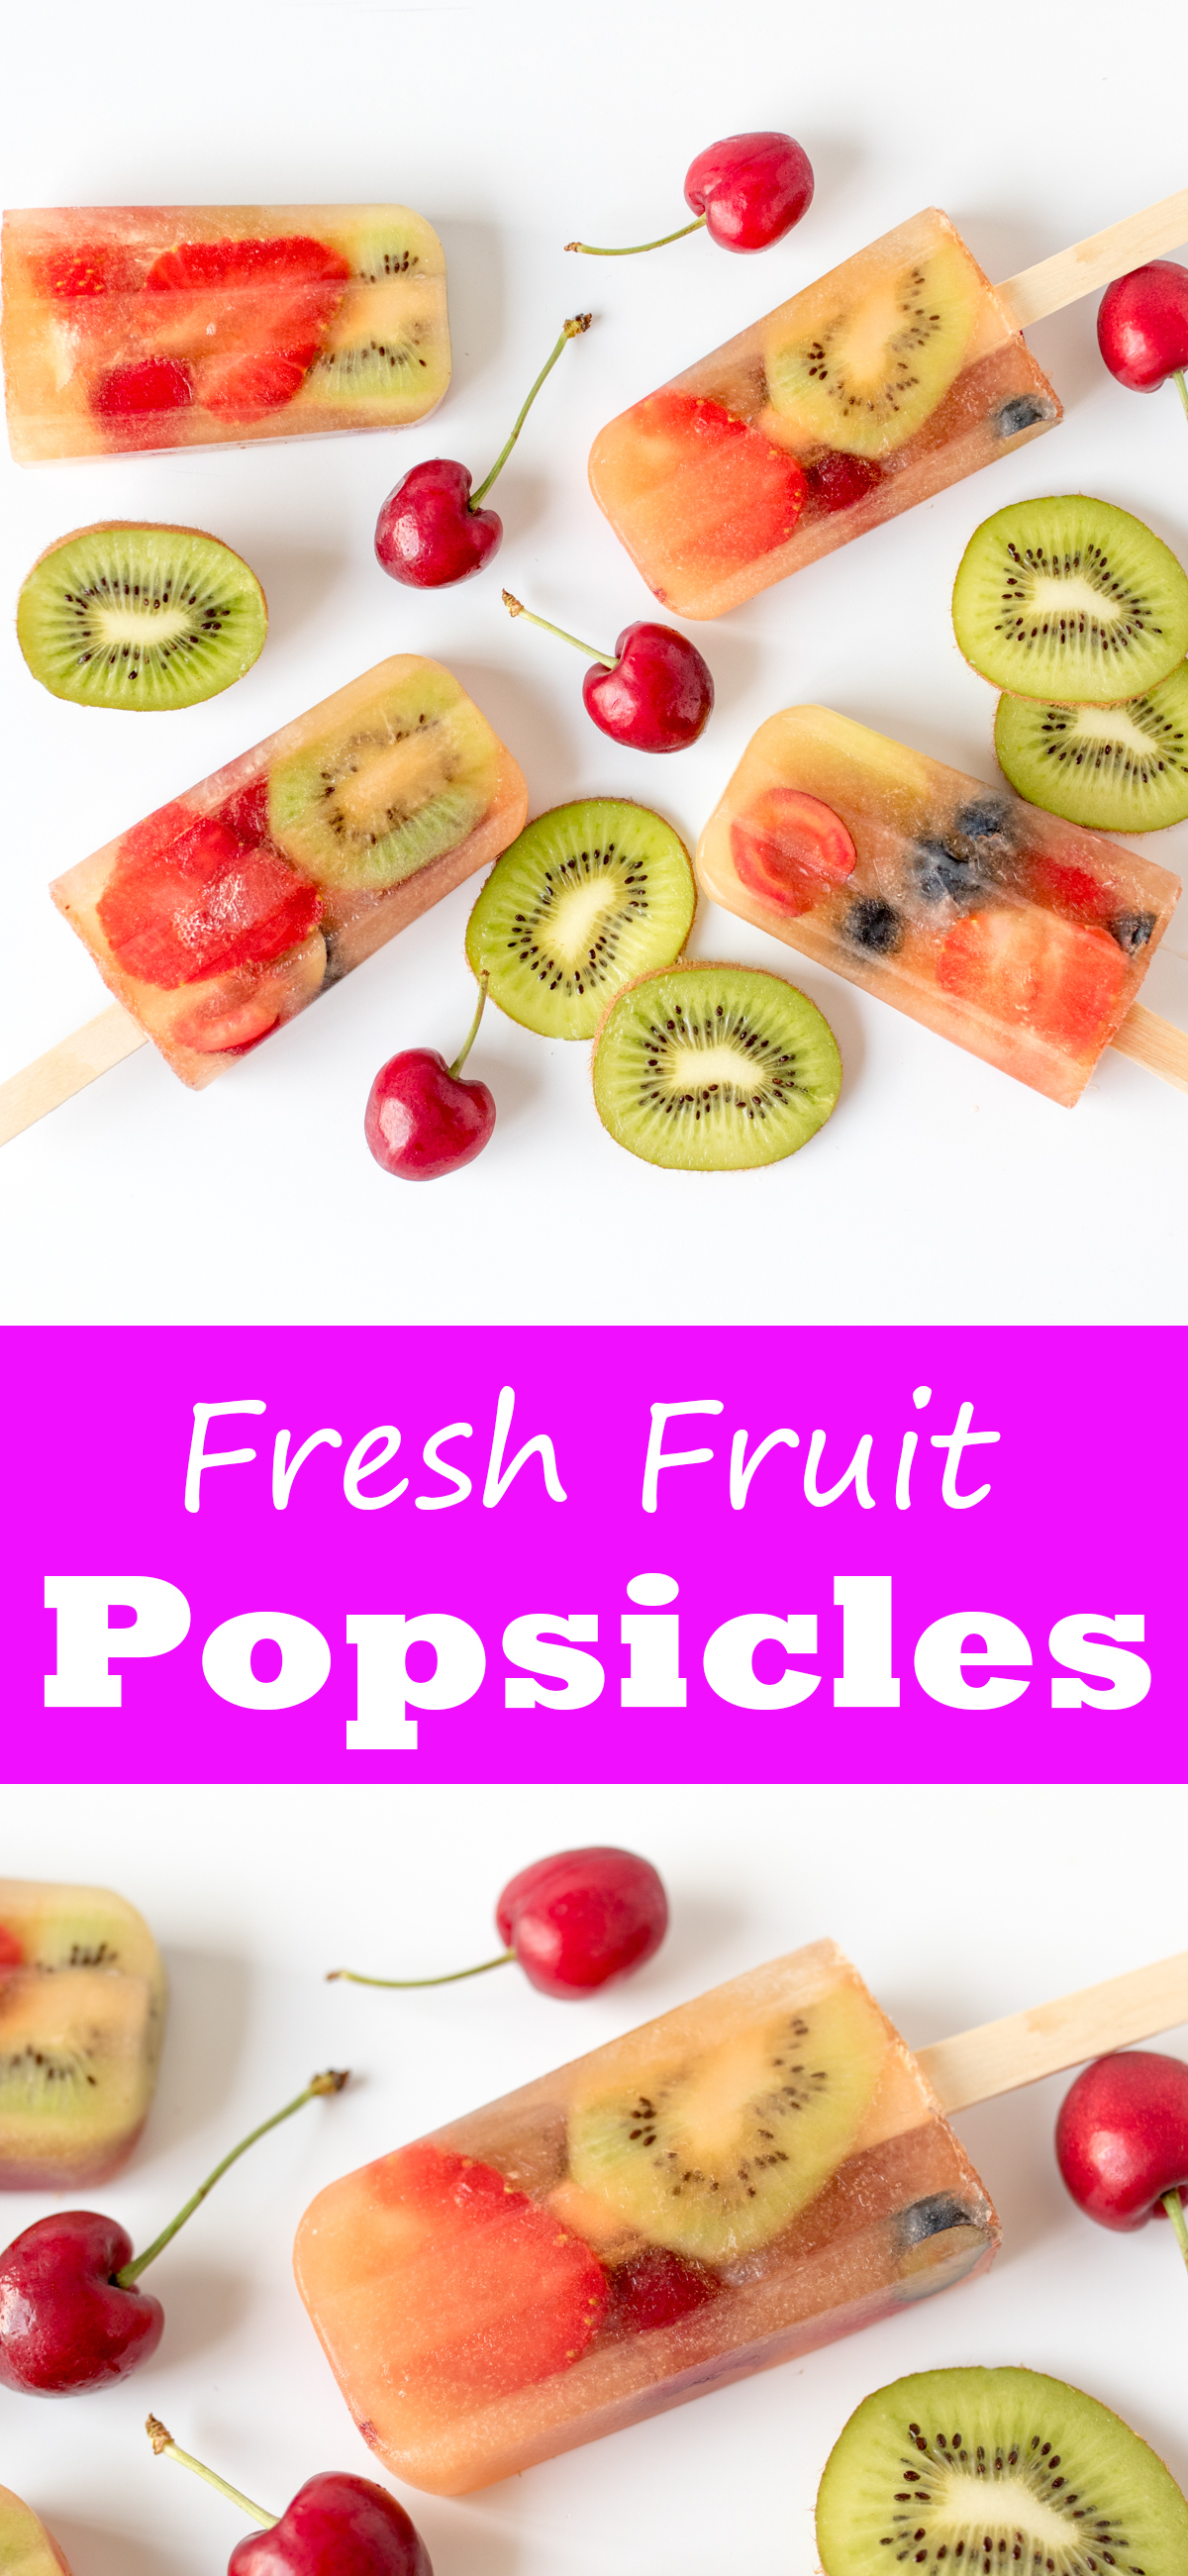 These fruity popsicles are a real hit with the kids - and they're healthy too!